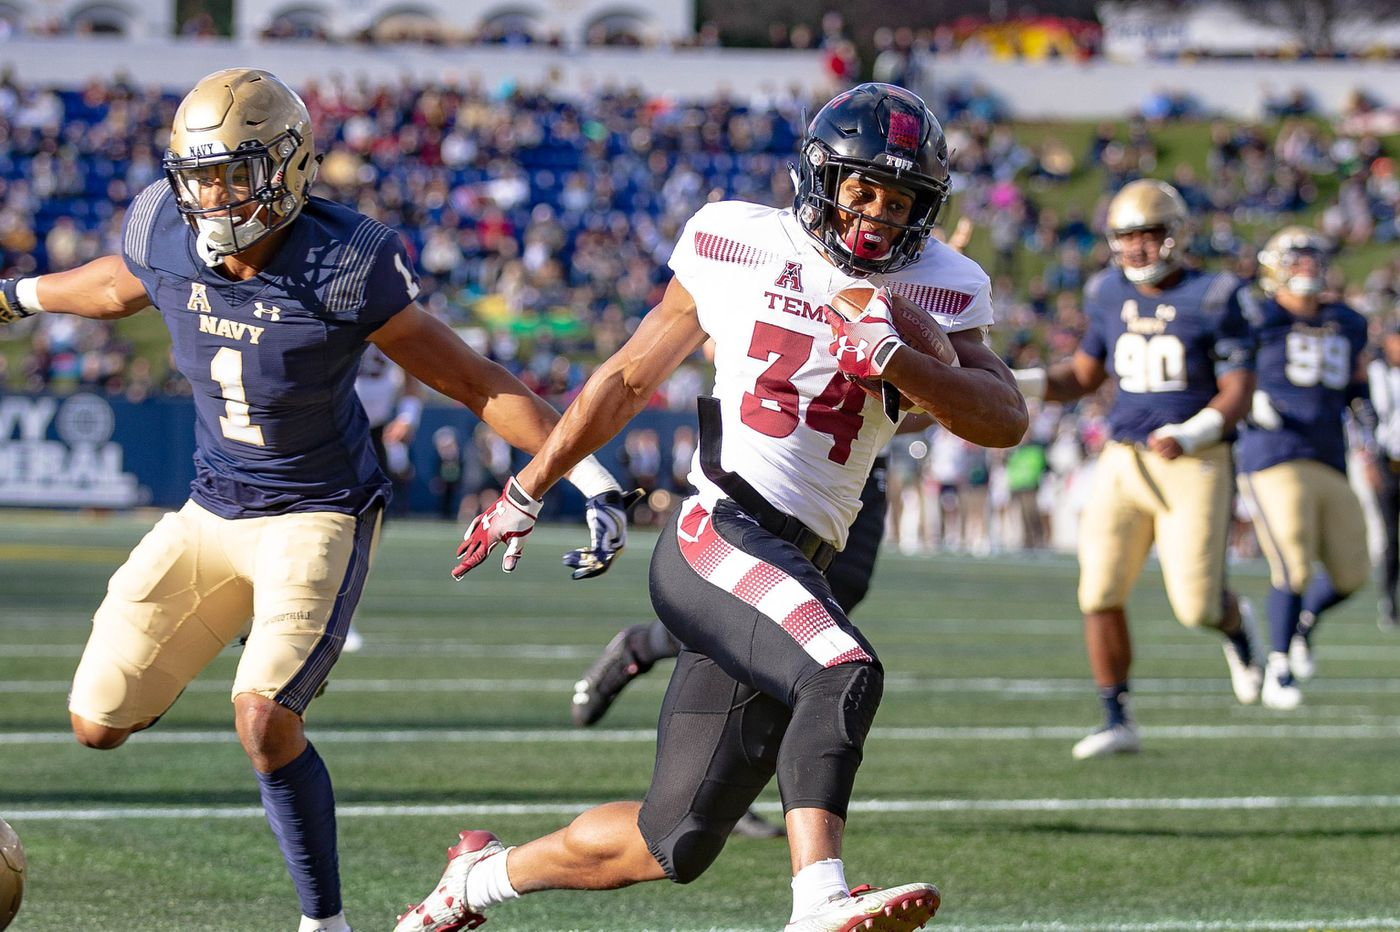 Playground legend Tyliek Raynor looking to build off his first career TD for Temple